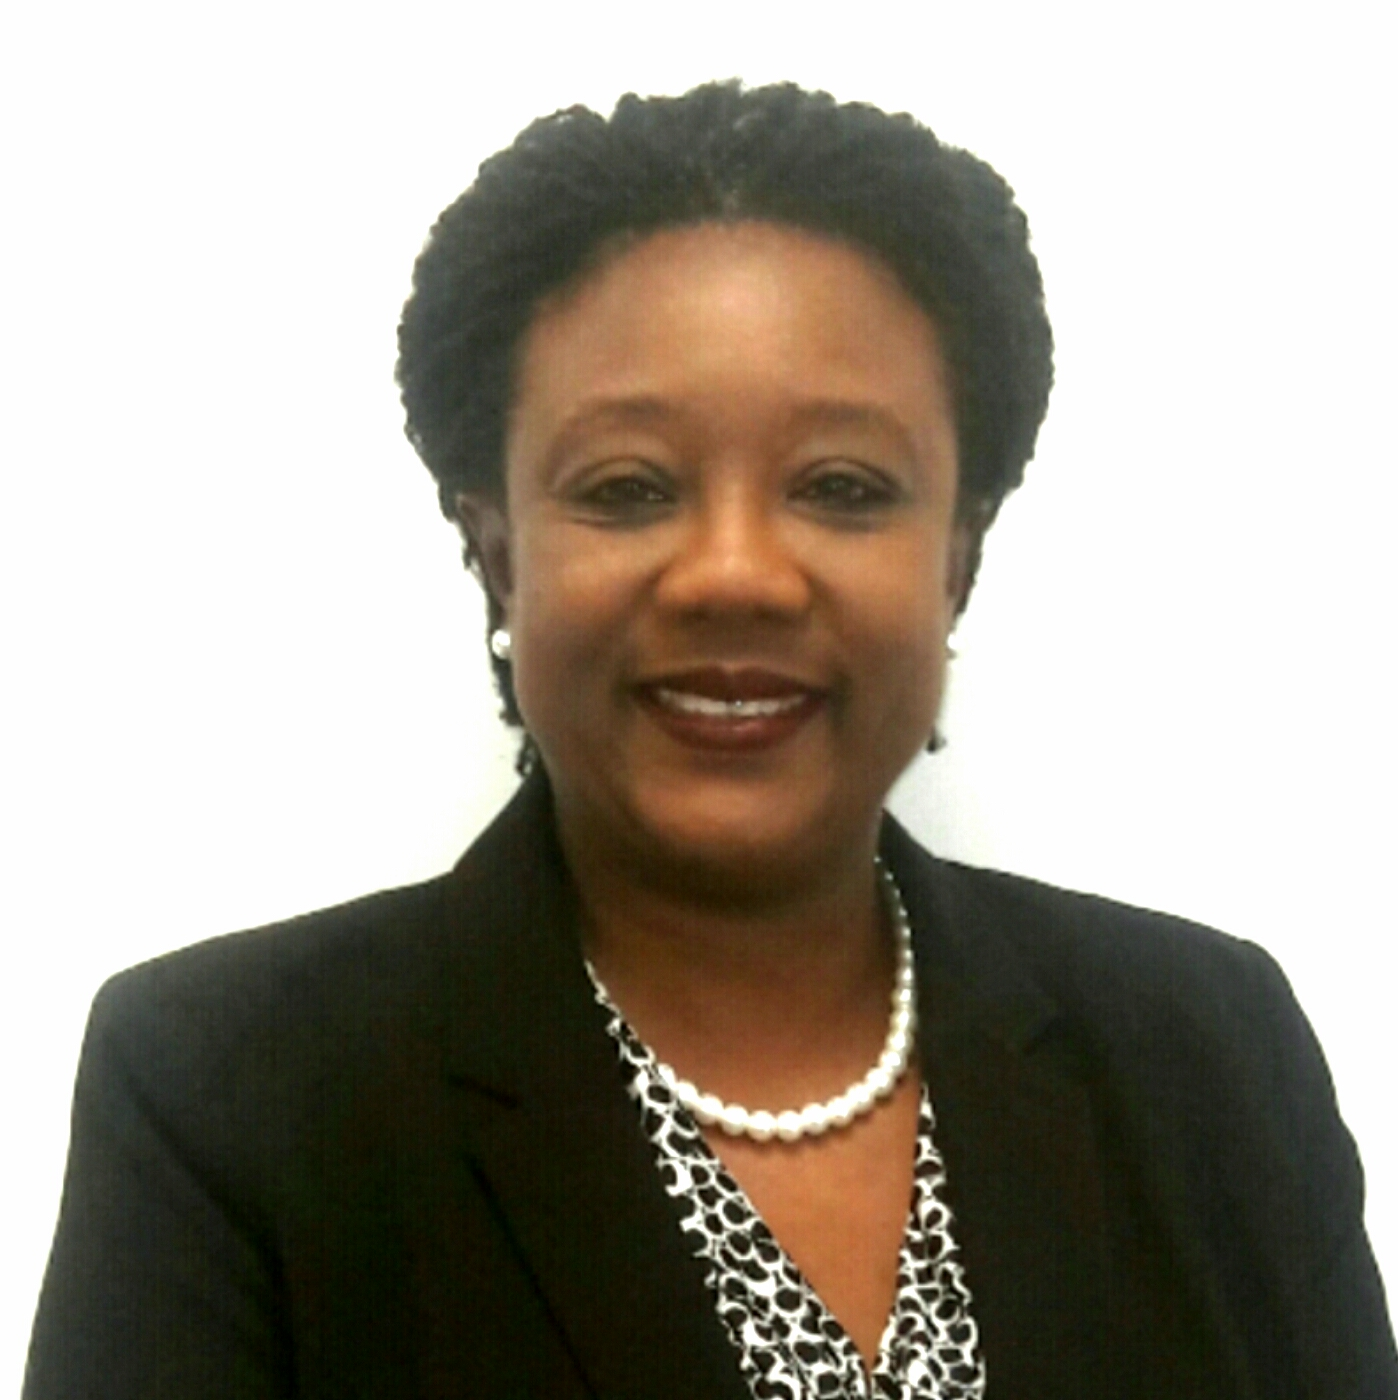 PAULETTE TUDOR   Operations Manager - Stelac Advisory Services (Barbados) Ltd. - Barbados    27 years of experience in commercial and retail banking, account management, and operations   Former Relationship Manager, Business Banking RBC Royal Bank (Barbados) Limited; BSc Management Studies, University of the West Indies